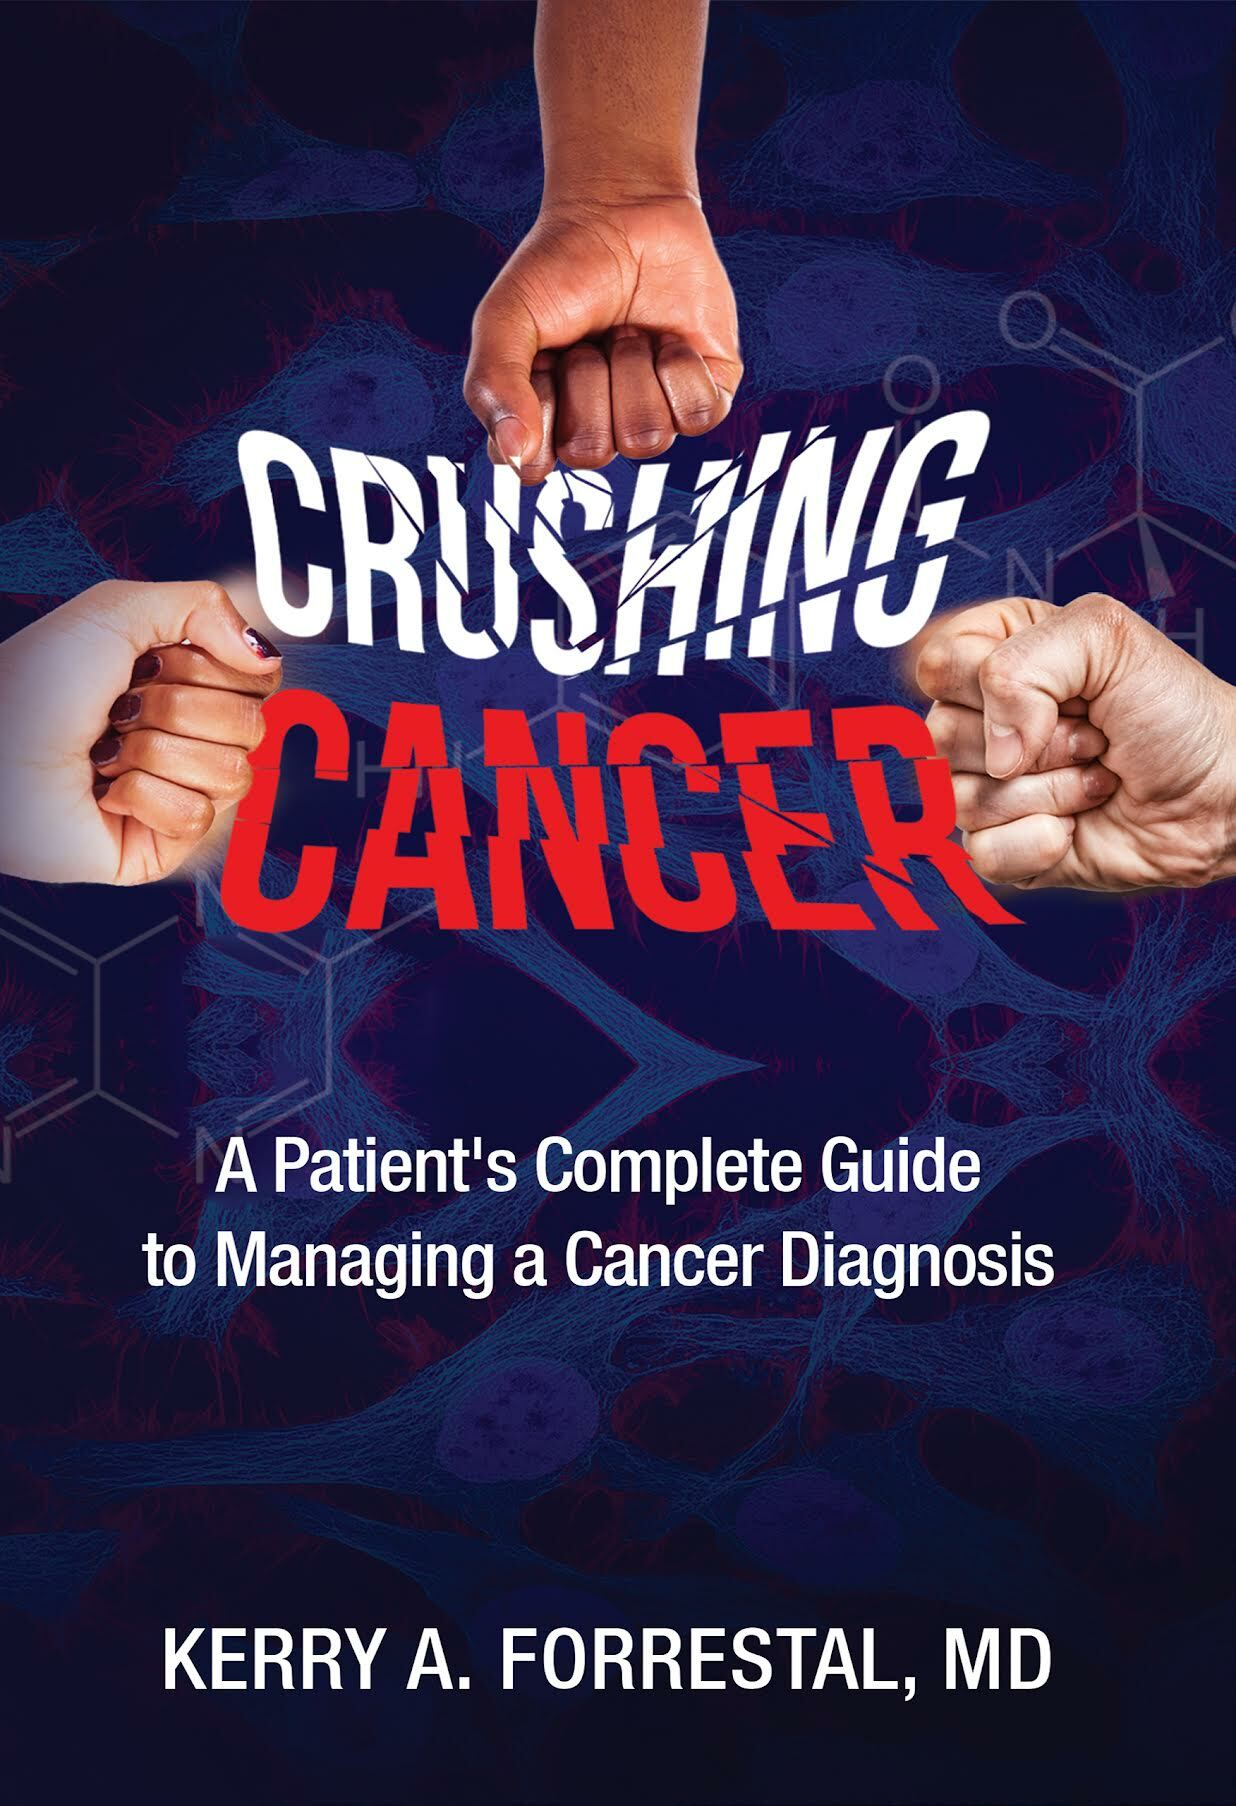 Dr. Kerry Forrestal's new book 'Crushing Cancer - A Patient's Complete Guide to Managing a Cancer Diagnosis.'